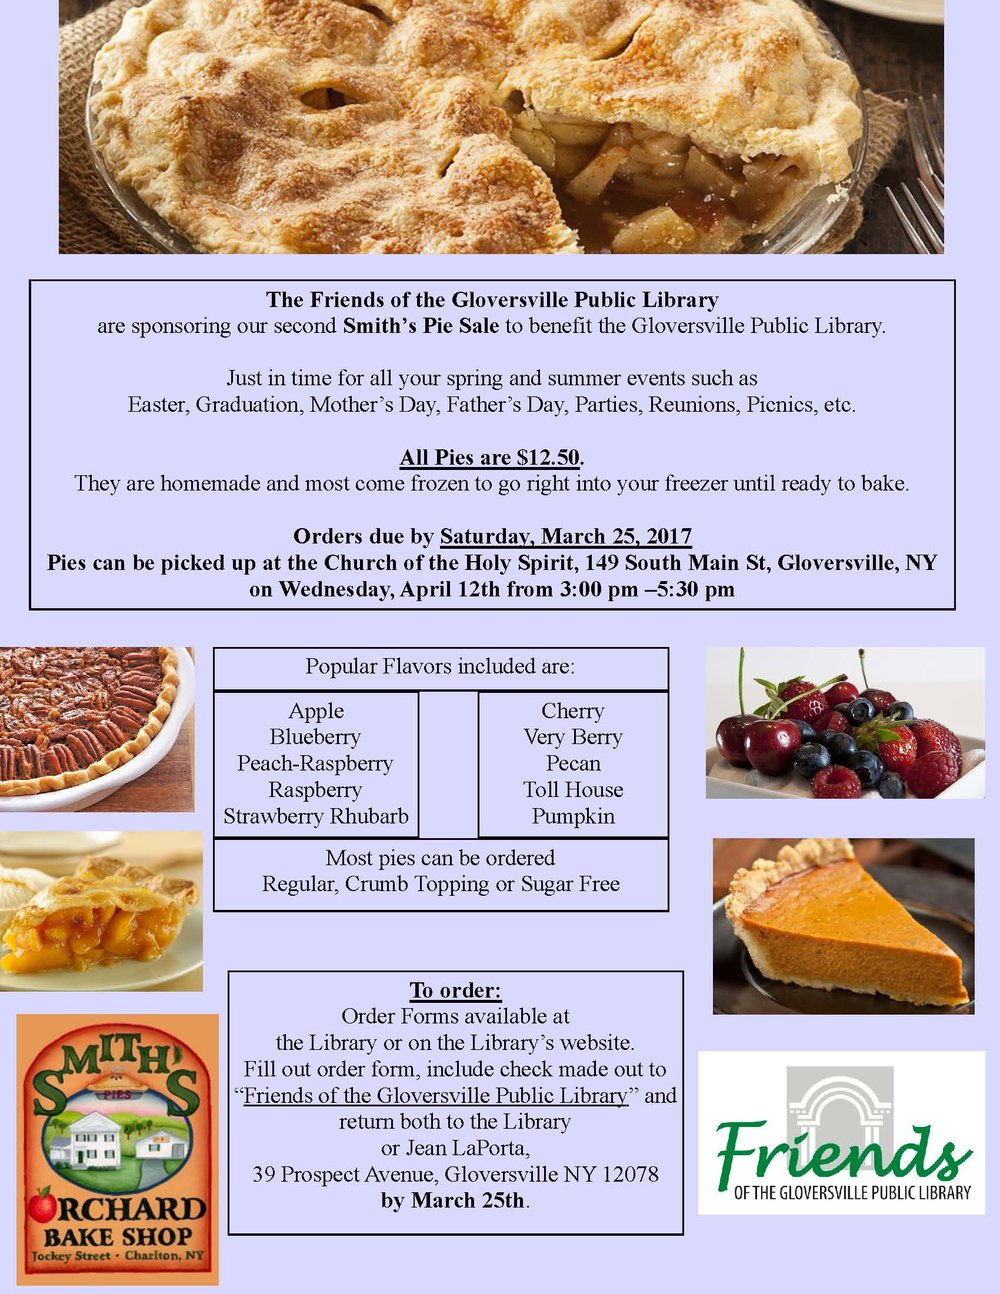 library pie sale flyer 2017.jpg